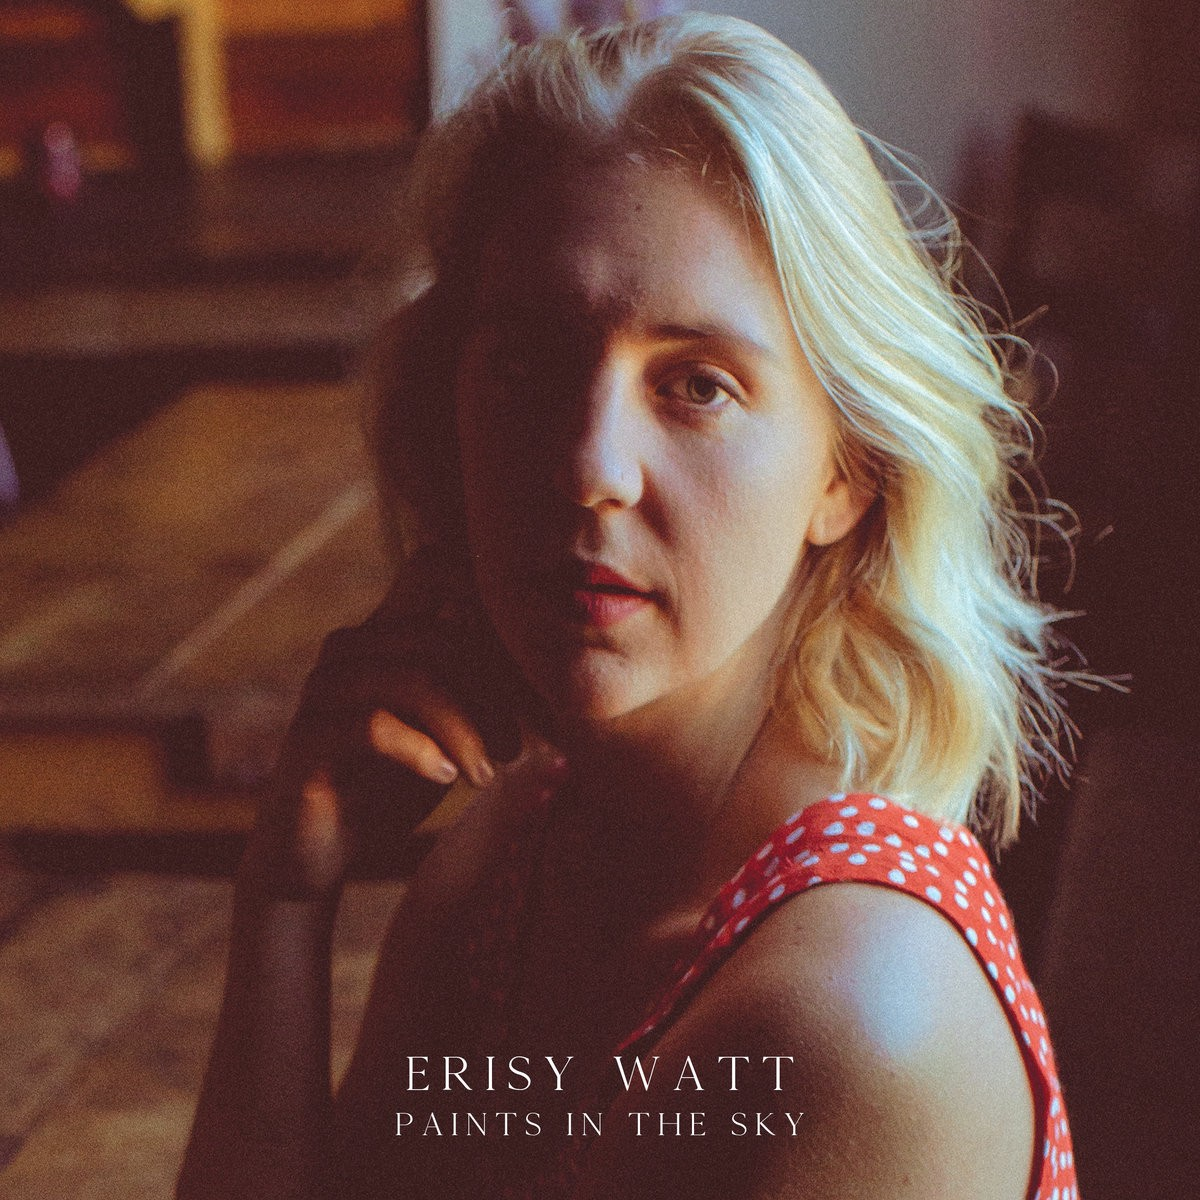 Erisy Watt album cover